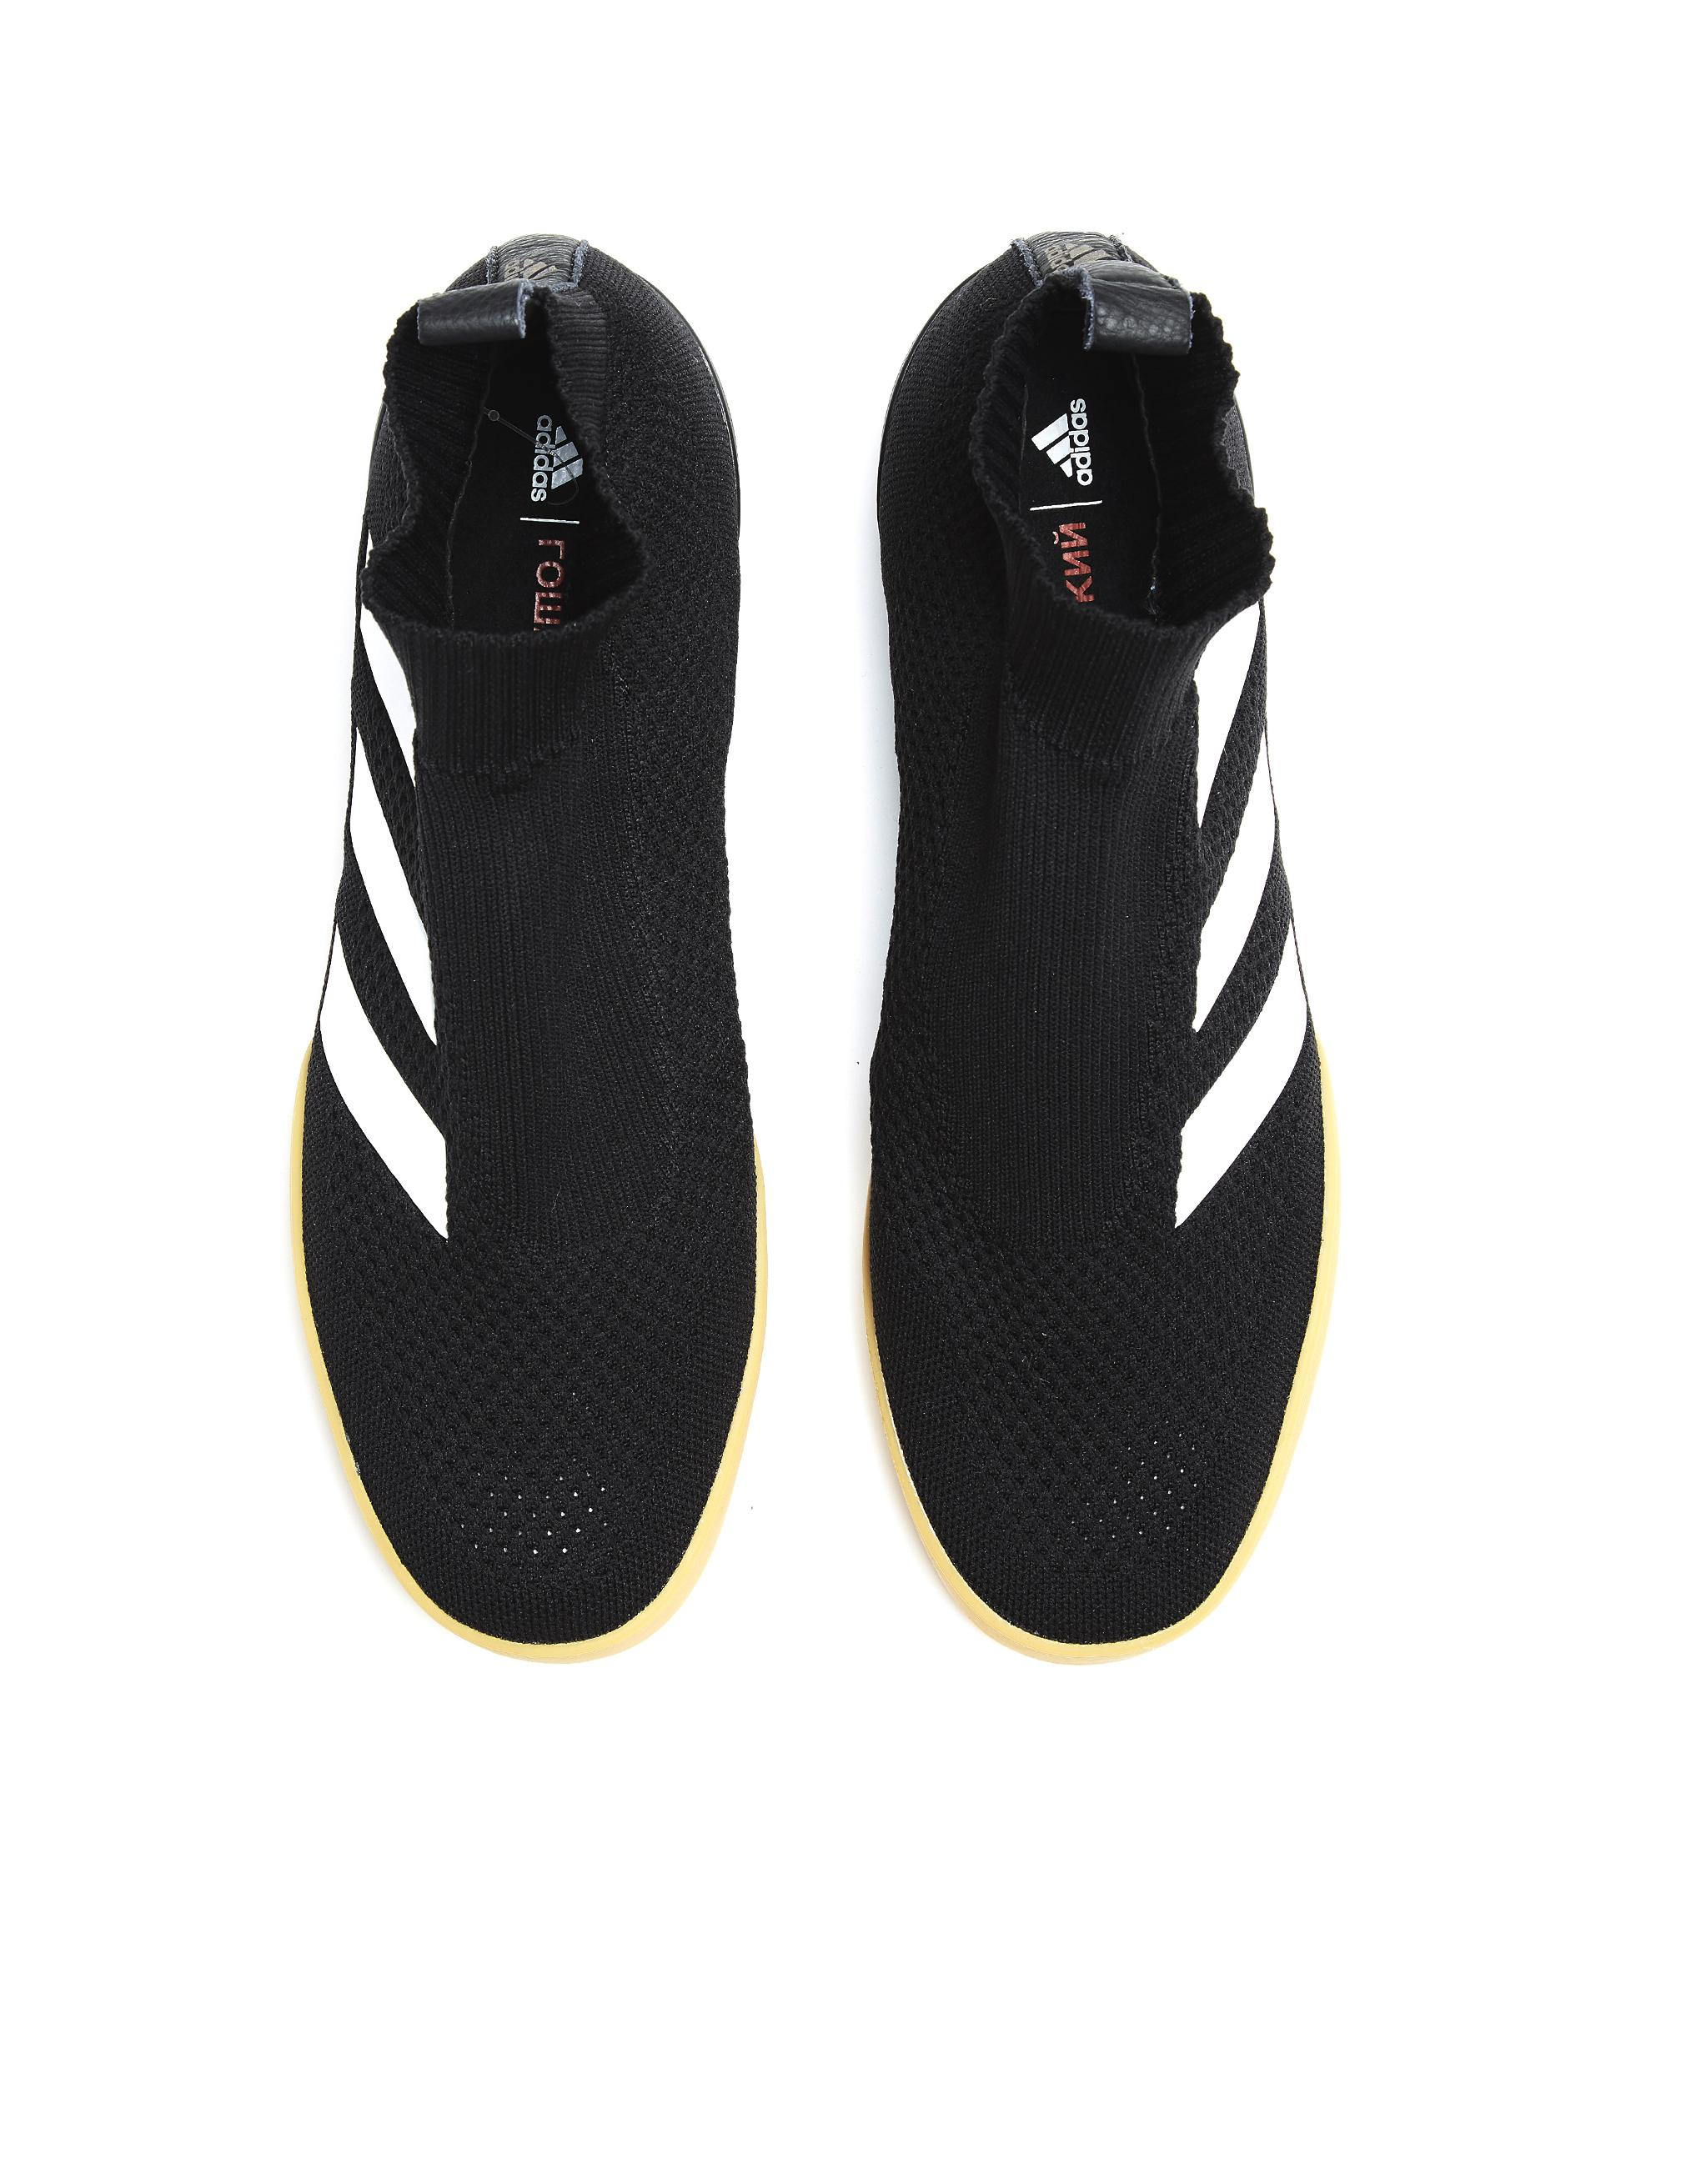 official photos a4b45 7c476 Gosha Rubchinskiy Black Adidas Ace 16+ Super Shoes